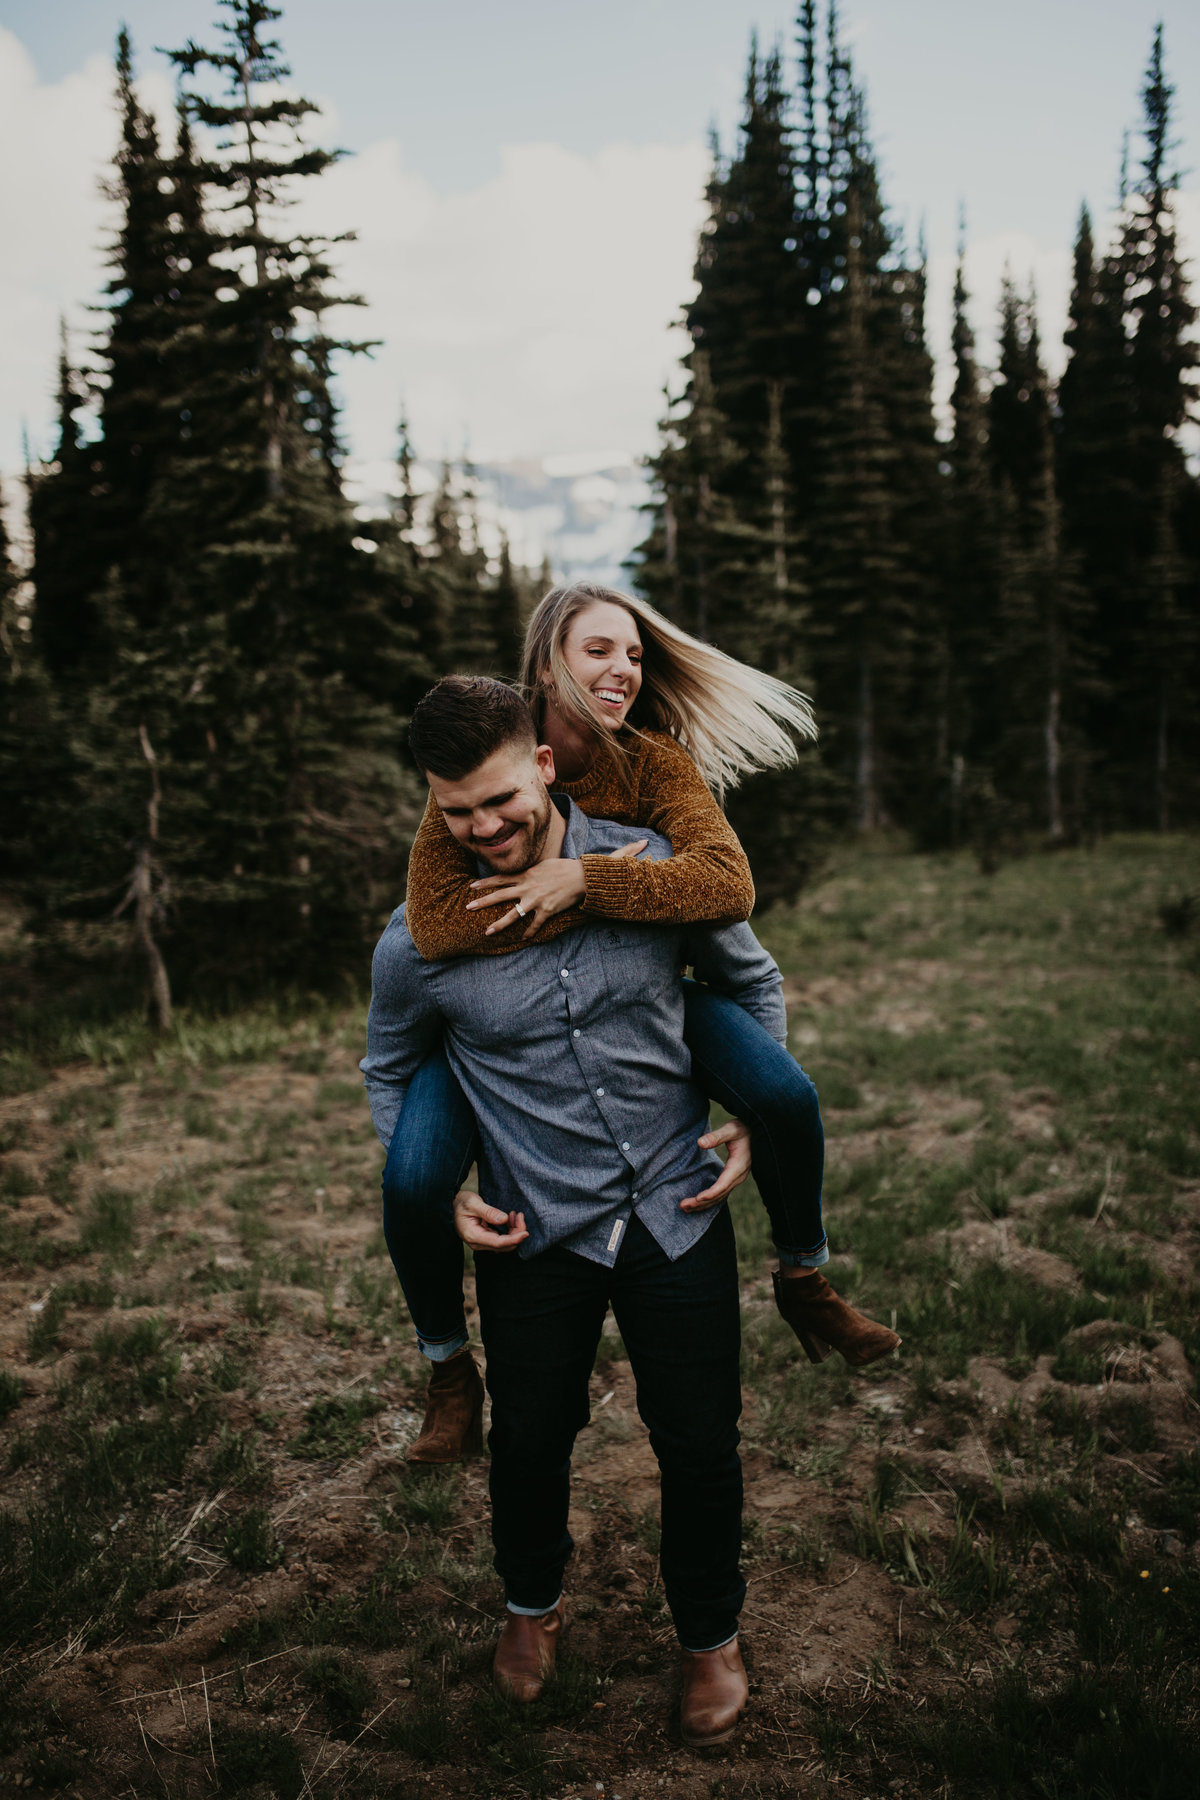 Marnie_Cornell_Photography_Engagement_Mount_Rainier_RK-133